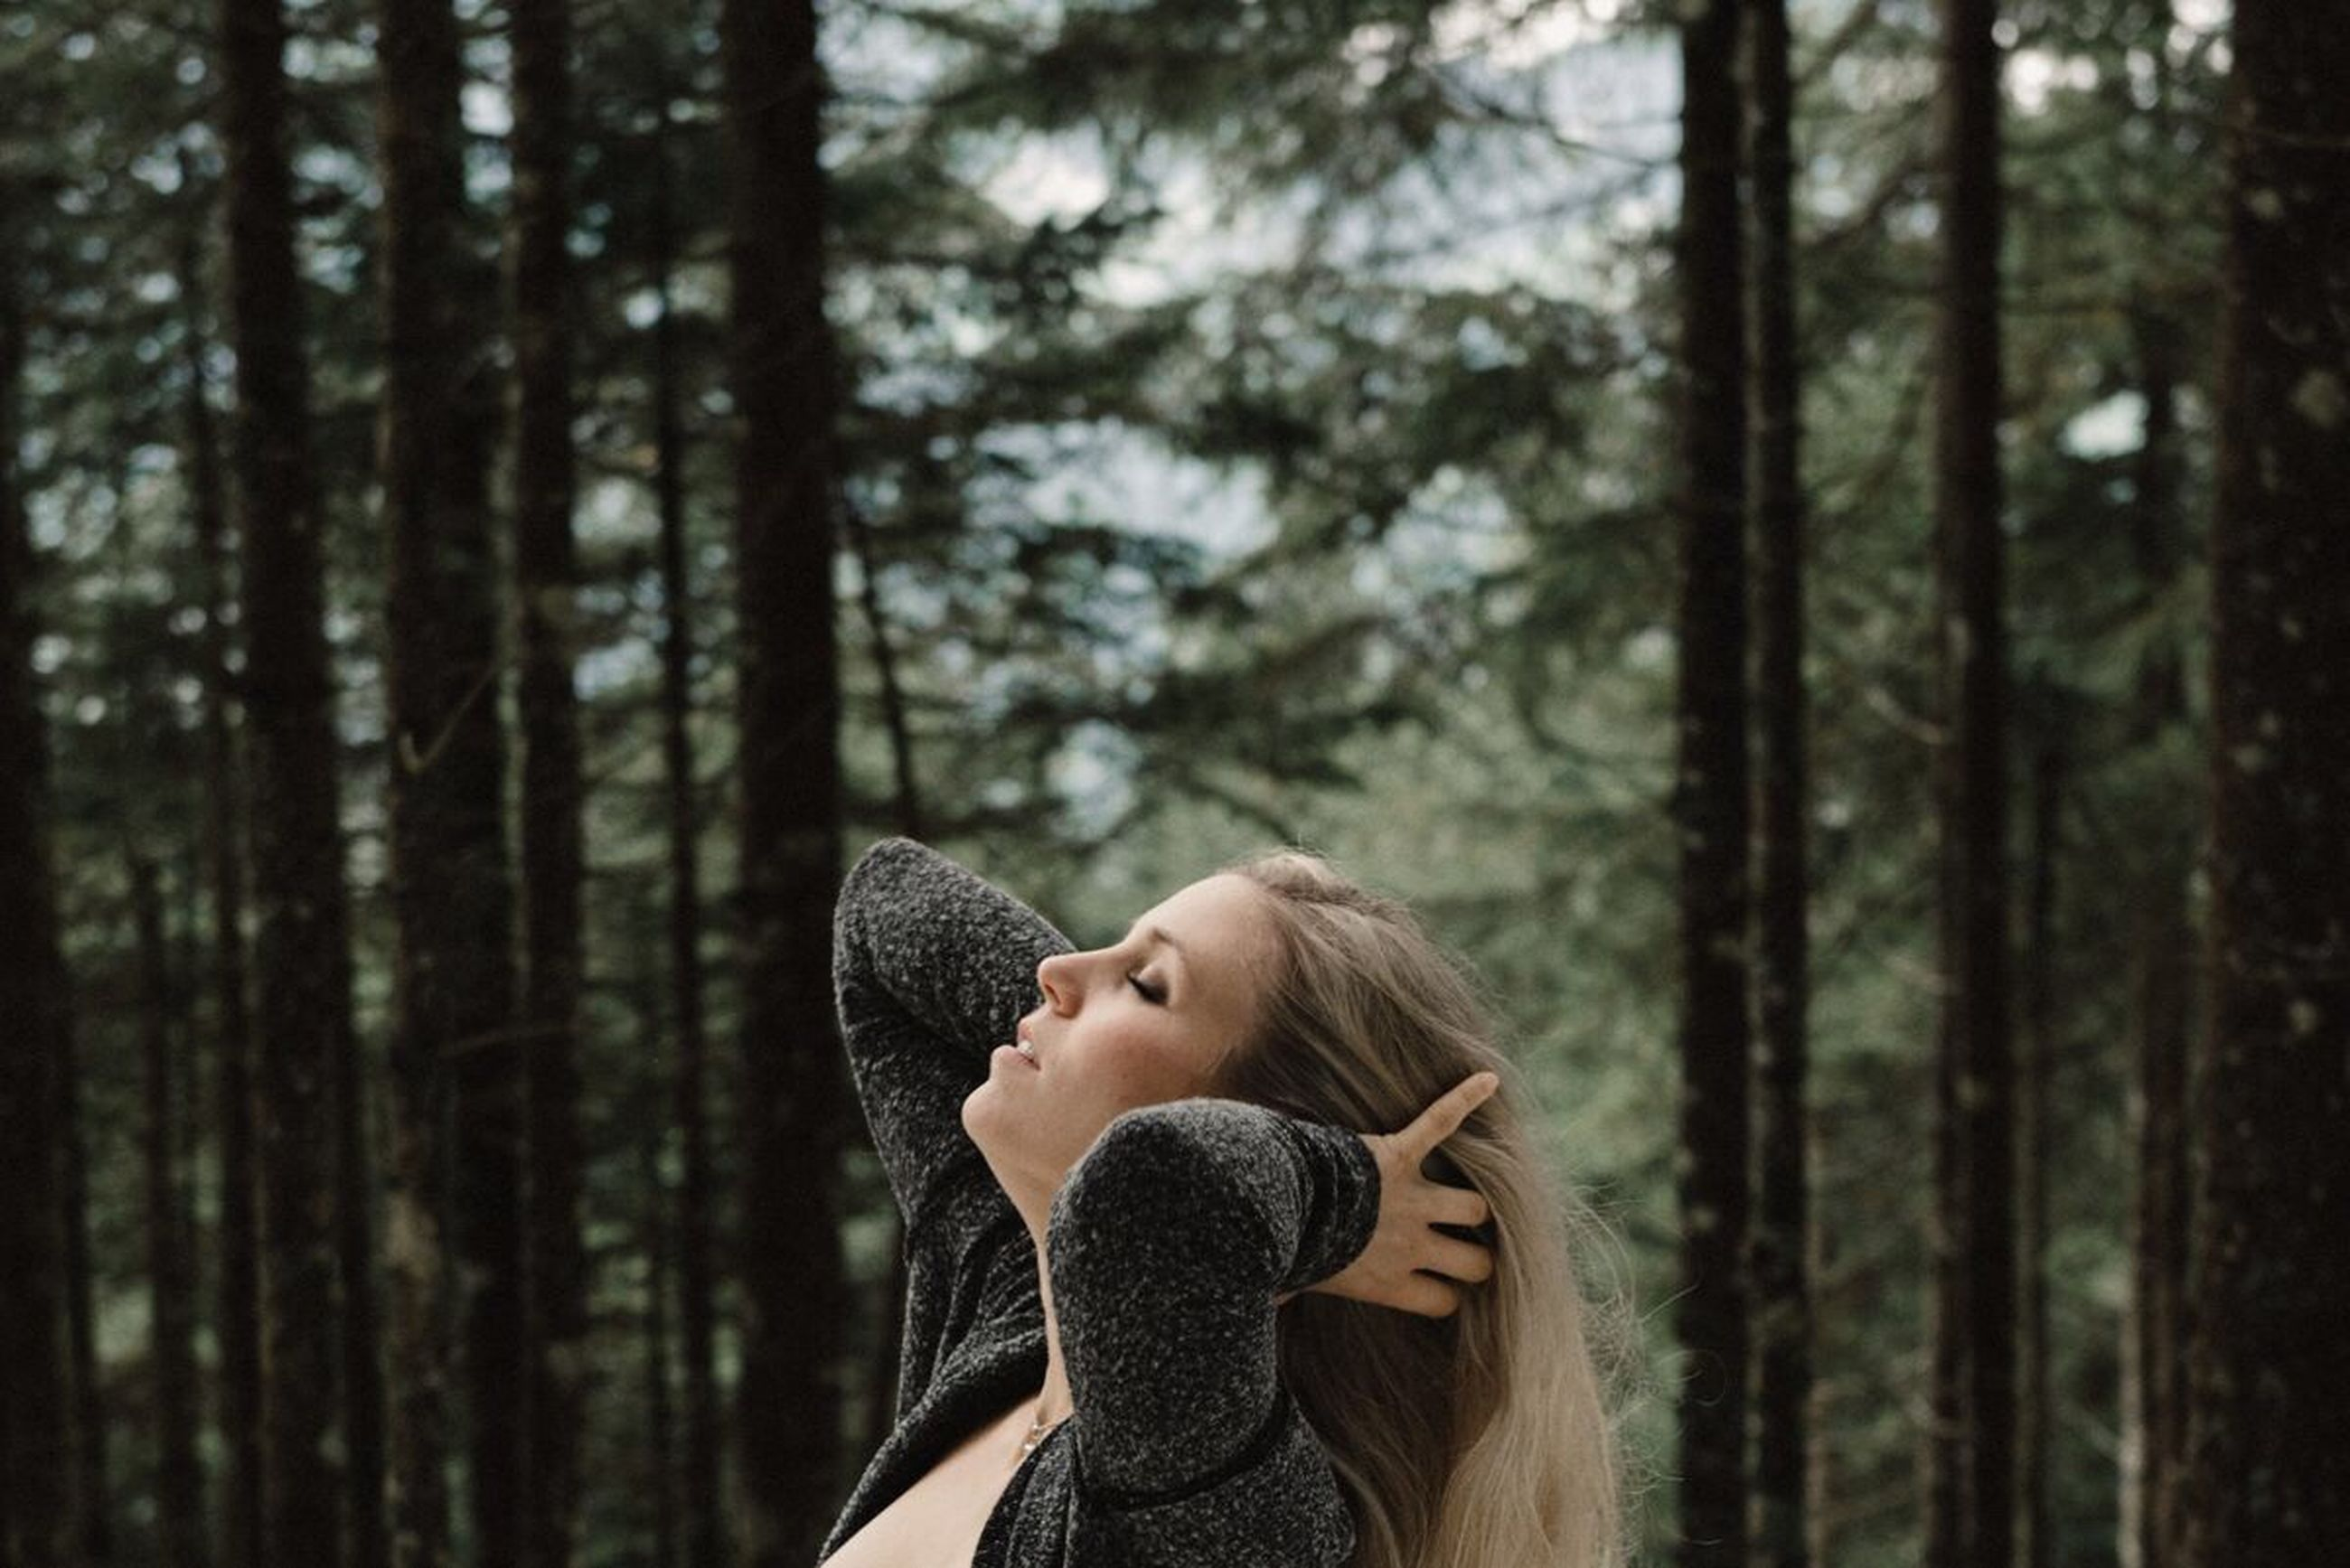 woodland, contemplation, adults only, beauty, only women, forest, young adult, adult, nature, headshot, one woman only, tree, outdoors, beautiful woman, people, women, one person, young women, sensory perception, warm clothing, day, real people, one young woman only, human body part